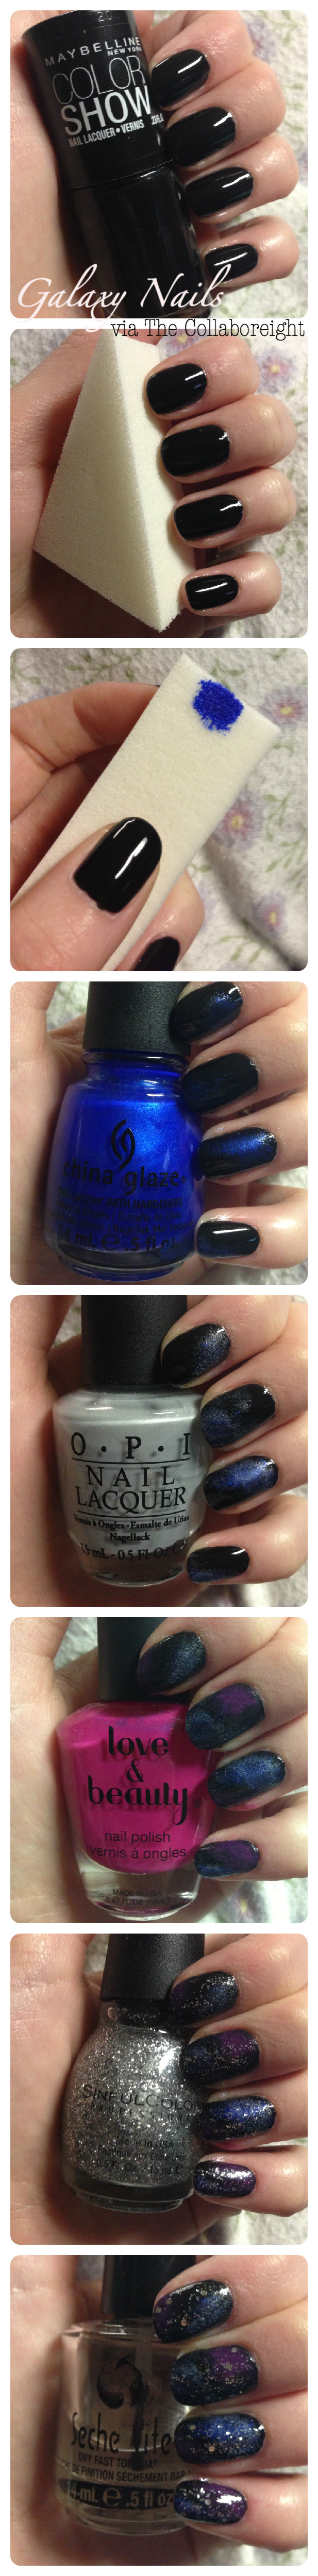 Manicure Monday: Galaxy Nails | The Collabor-eight